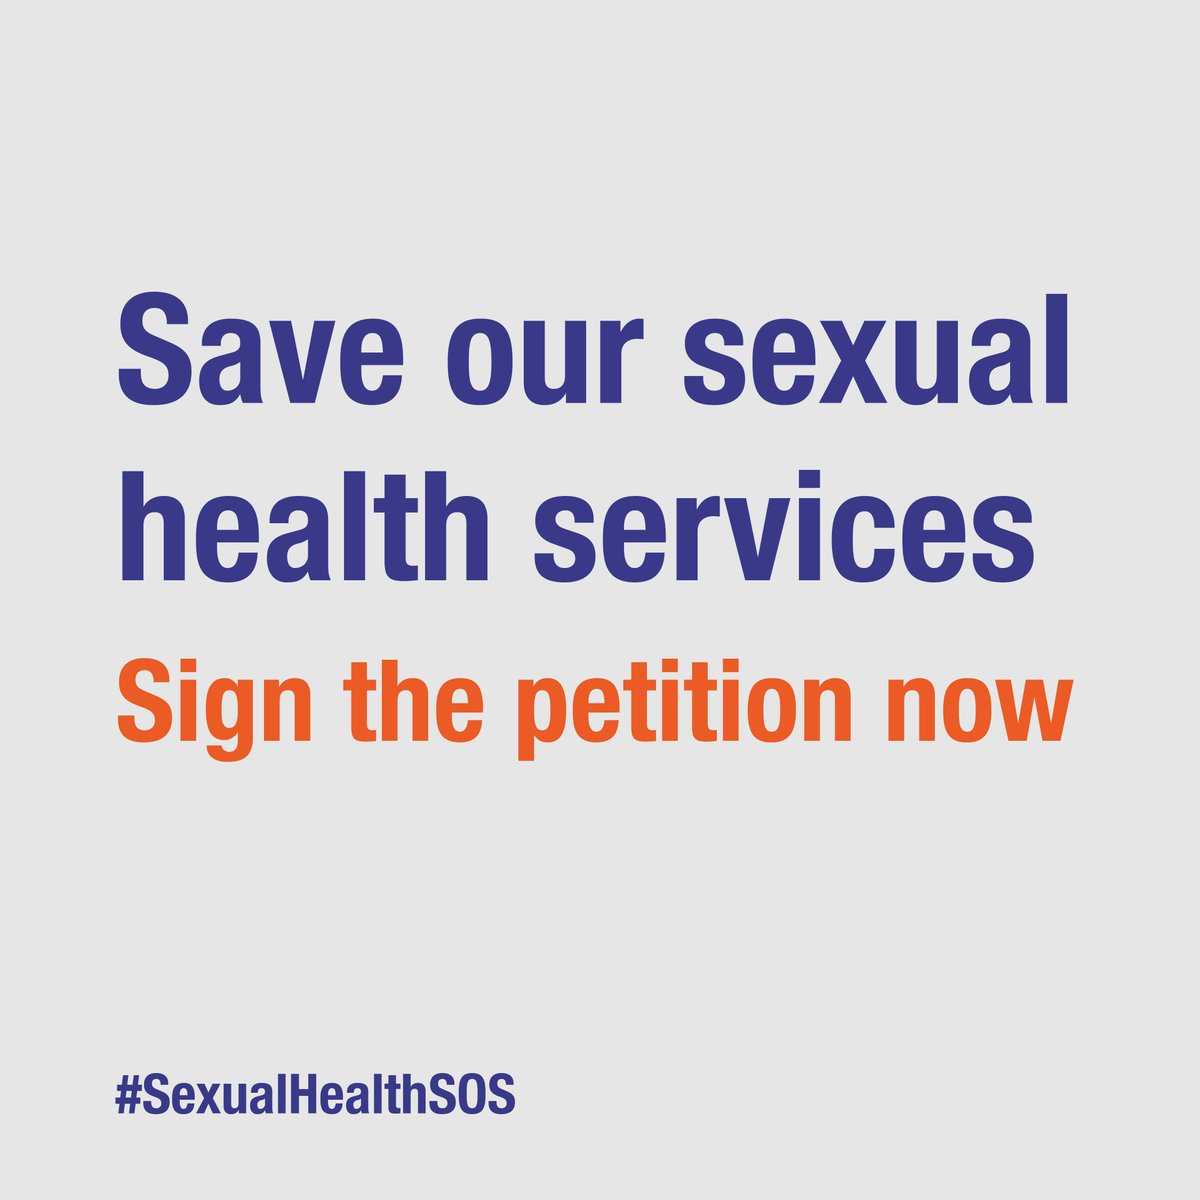 Government sexual health campaigns